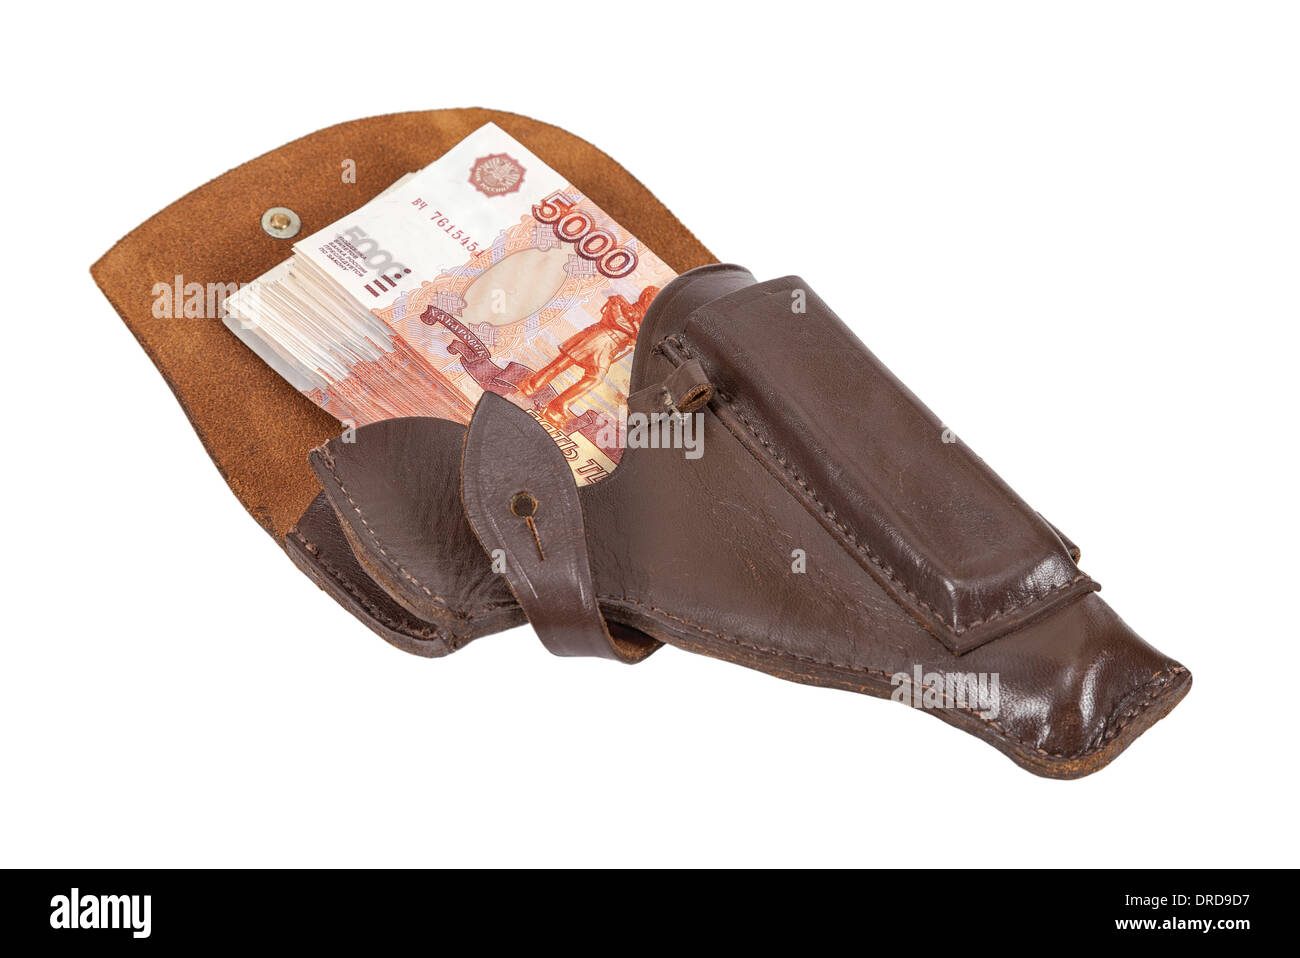 Banknotes in the brown leather holster isolated on white background - Stock Image